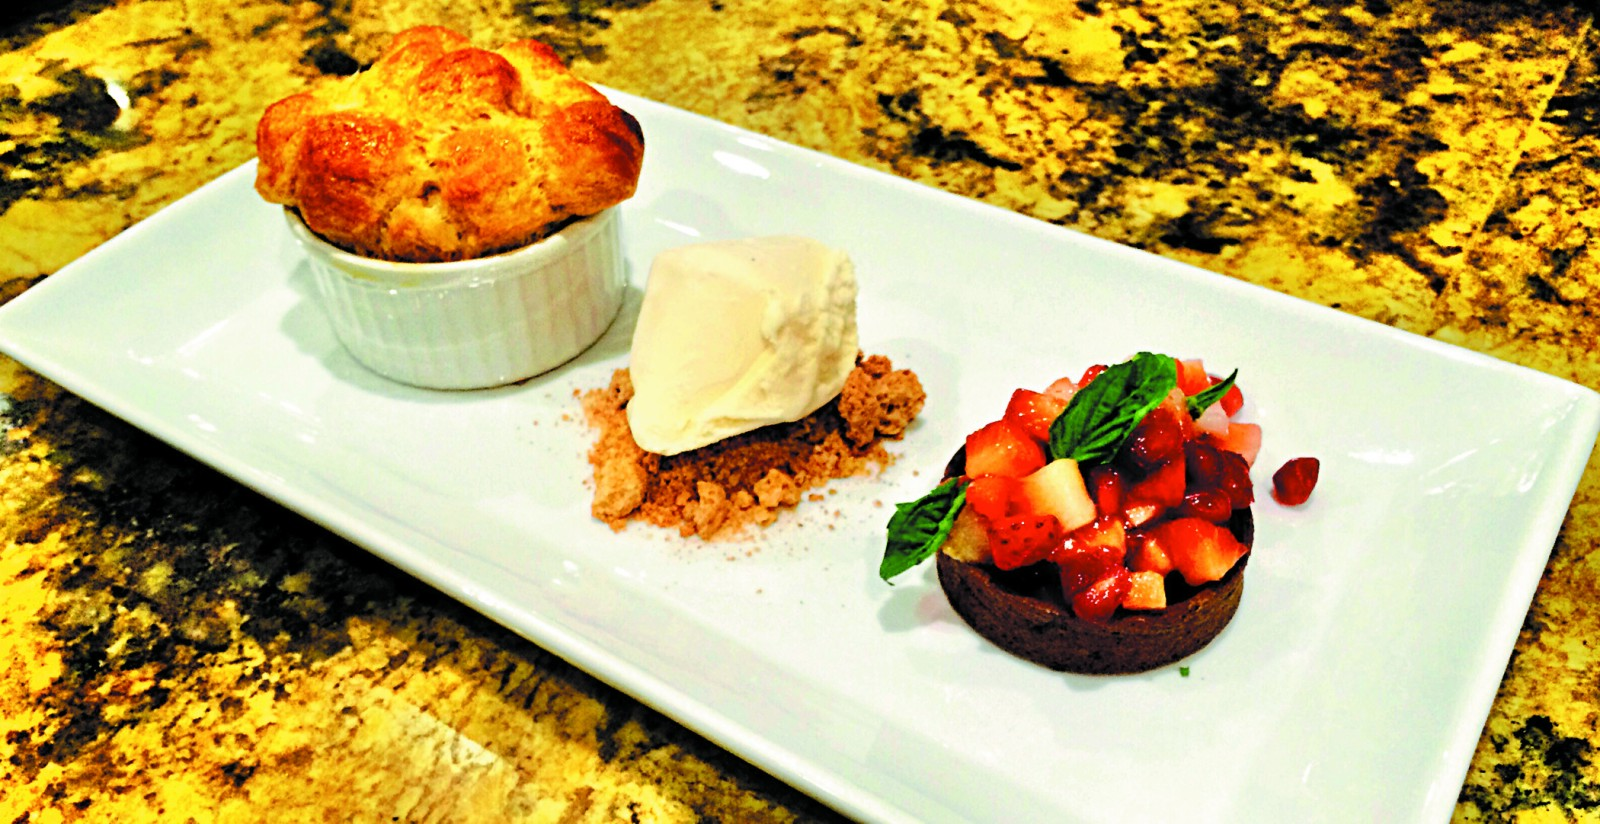 I served my cobbler with a vanilla bean ice cream, basil and strawberry salad-filled tartlet, and a gingersnap crumble. PHOTO BY MARK GODBEER